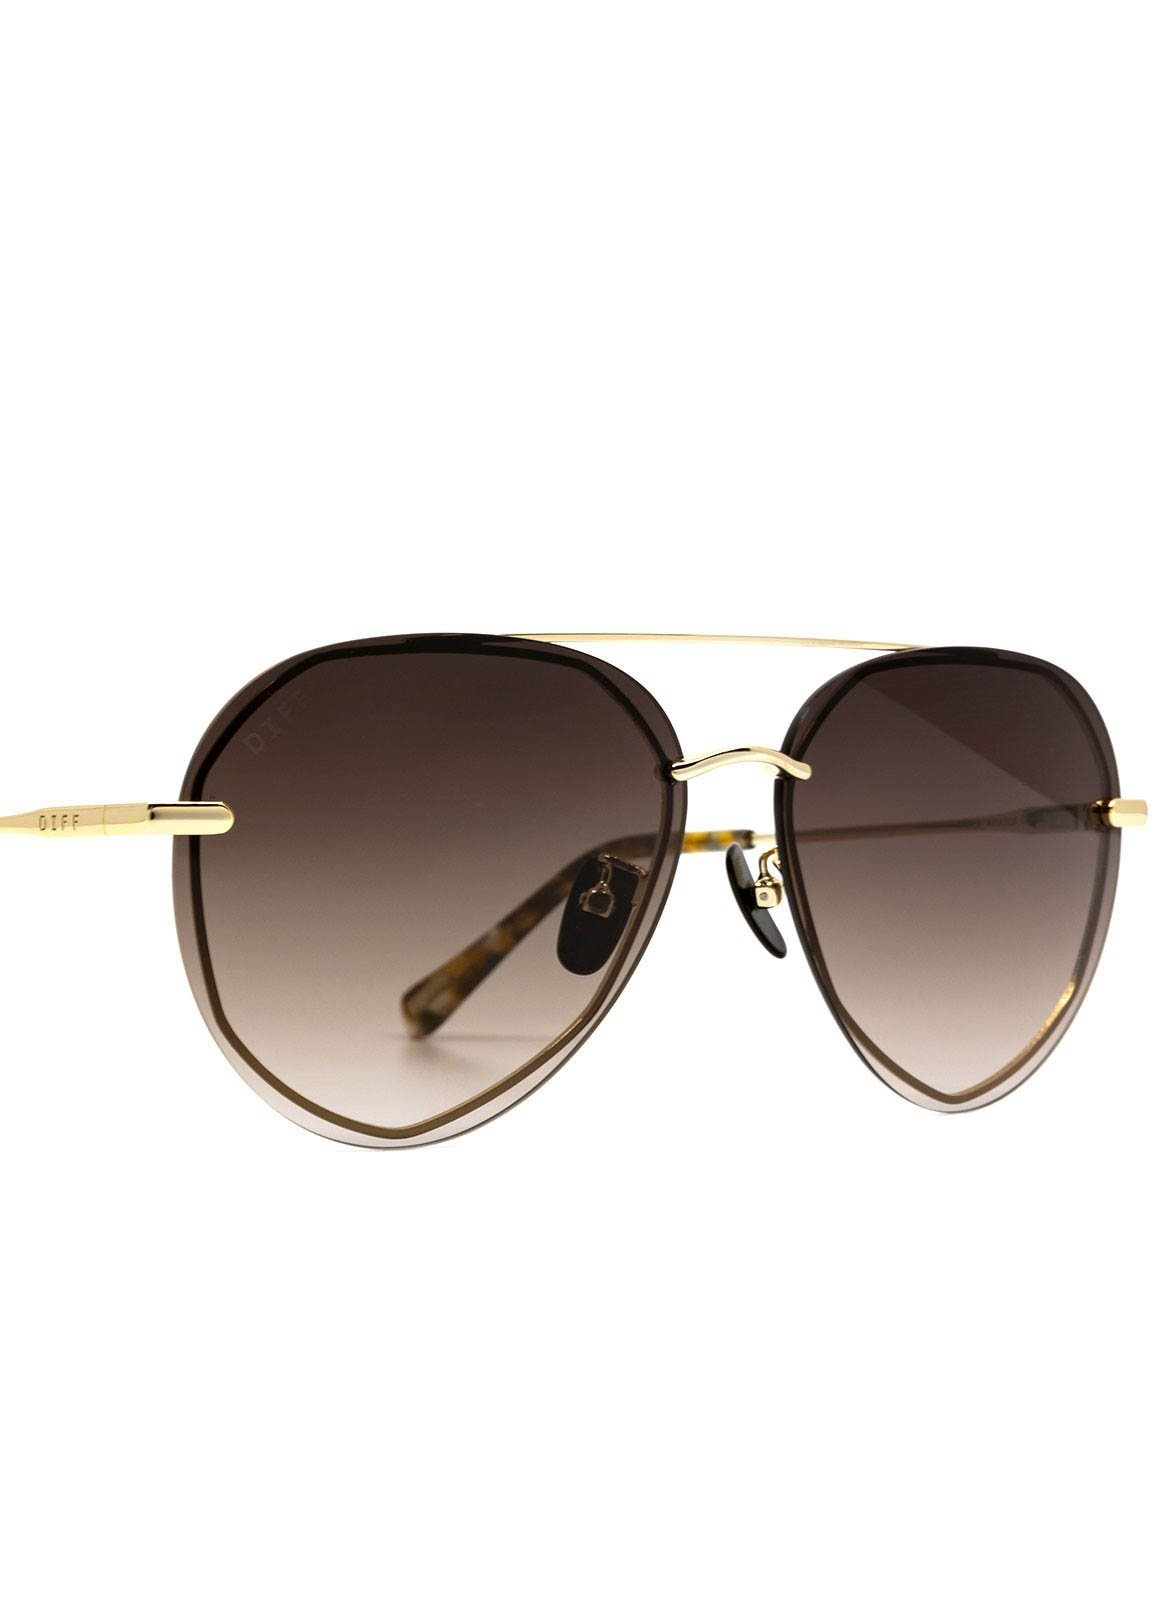 DIFF Eyewear - Lenox Accessories HYPEACH BOUTIQUE